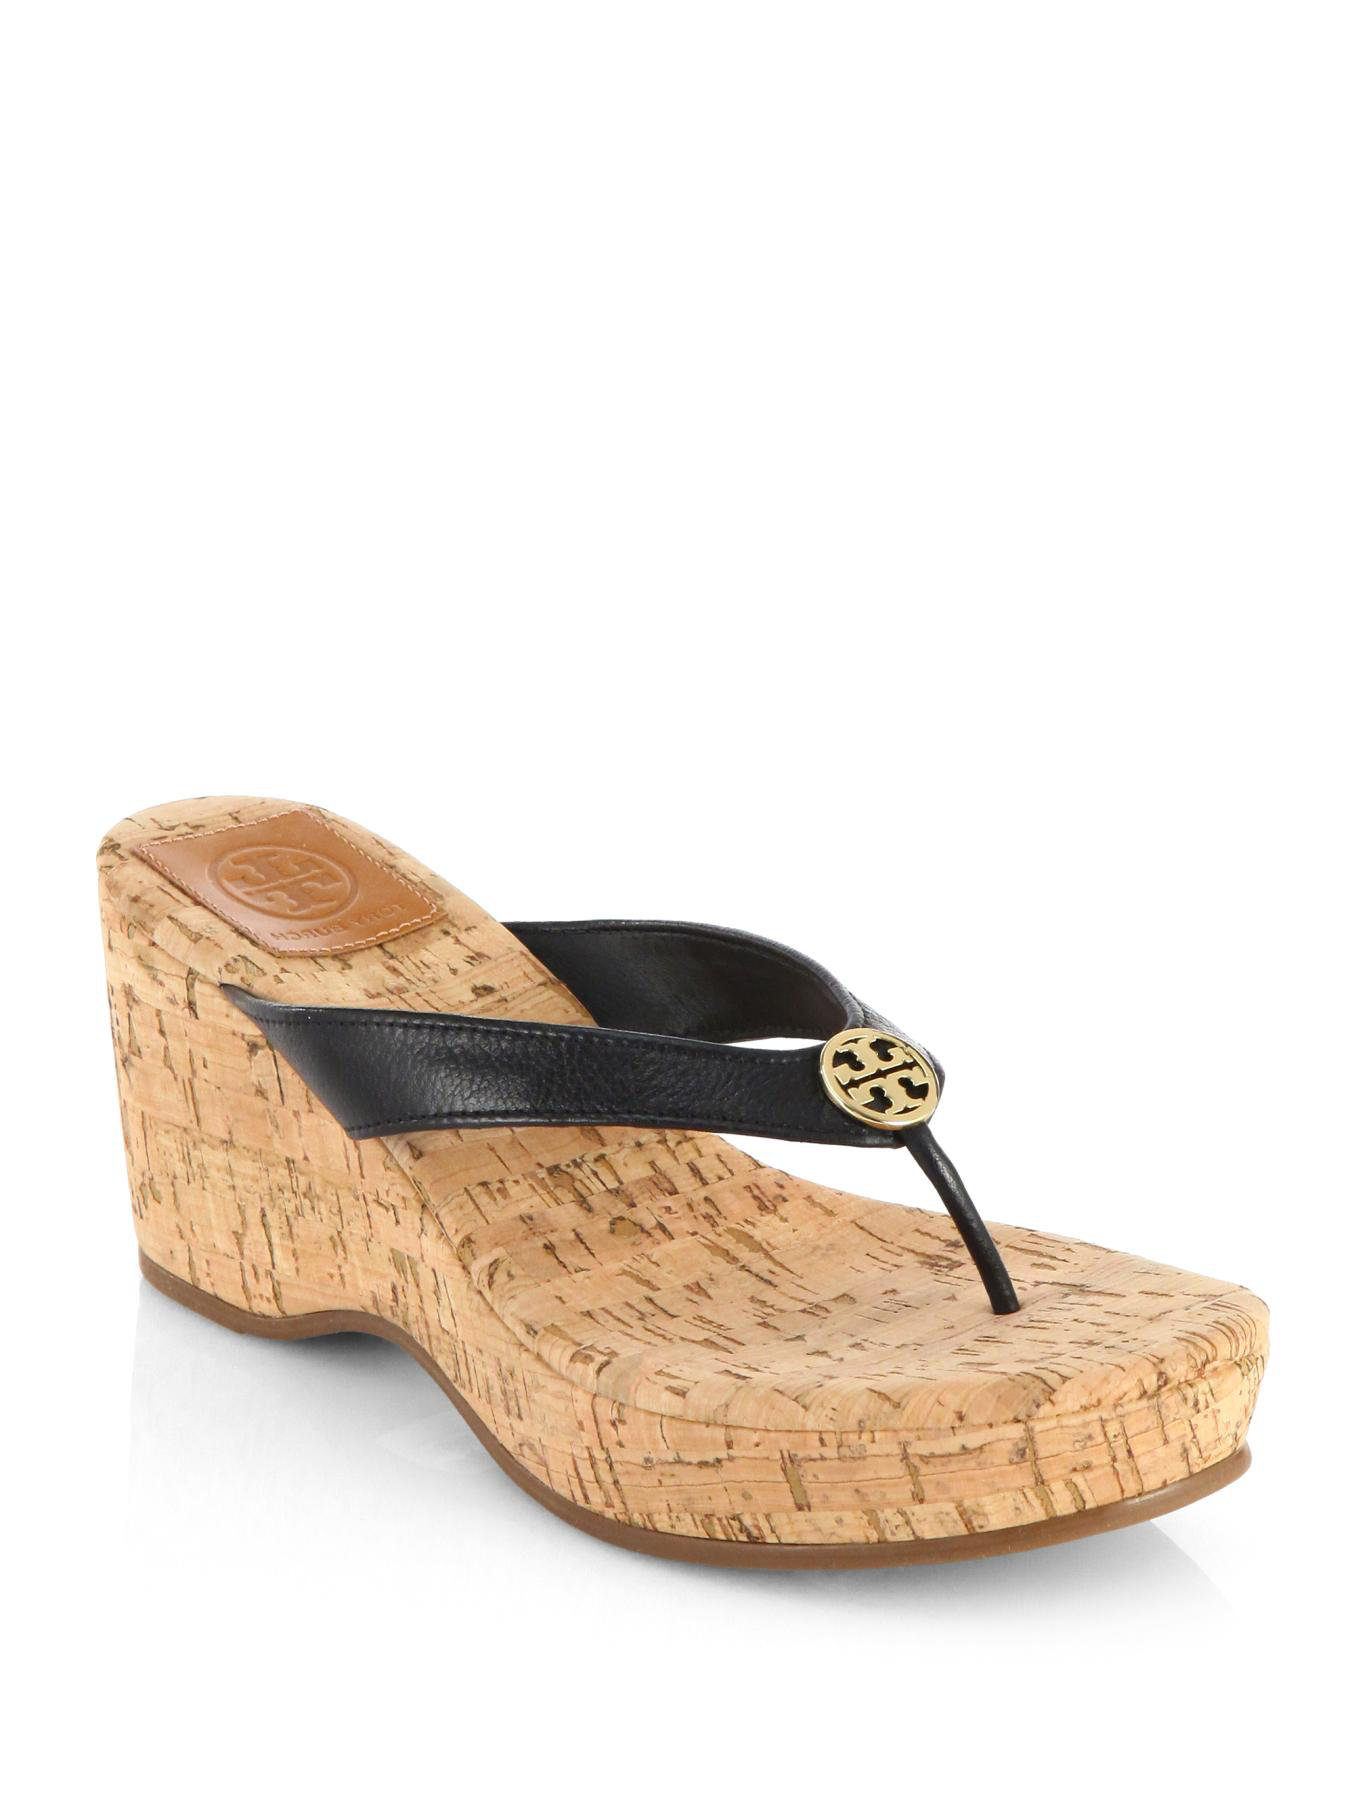 25d0d209d57ff9 Lyst - Tory Burch Suzy Leather Cork Wedge Sandals in Black